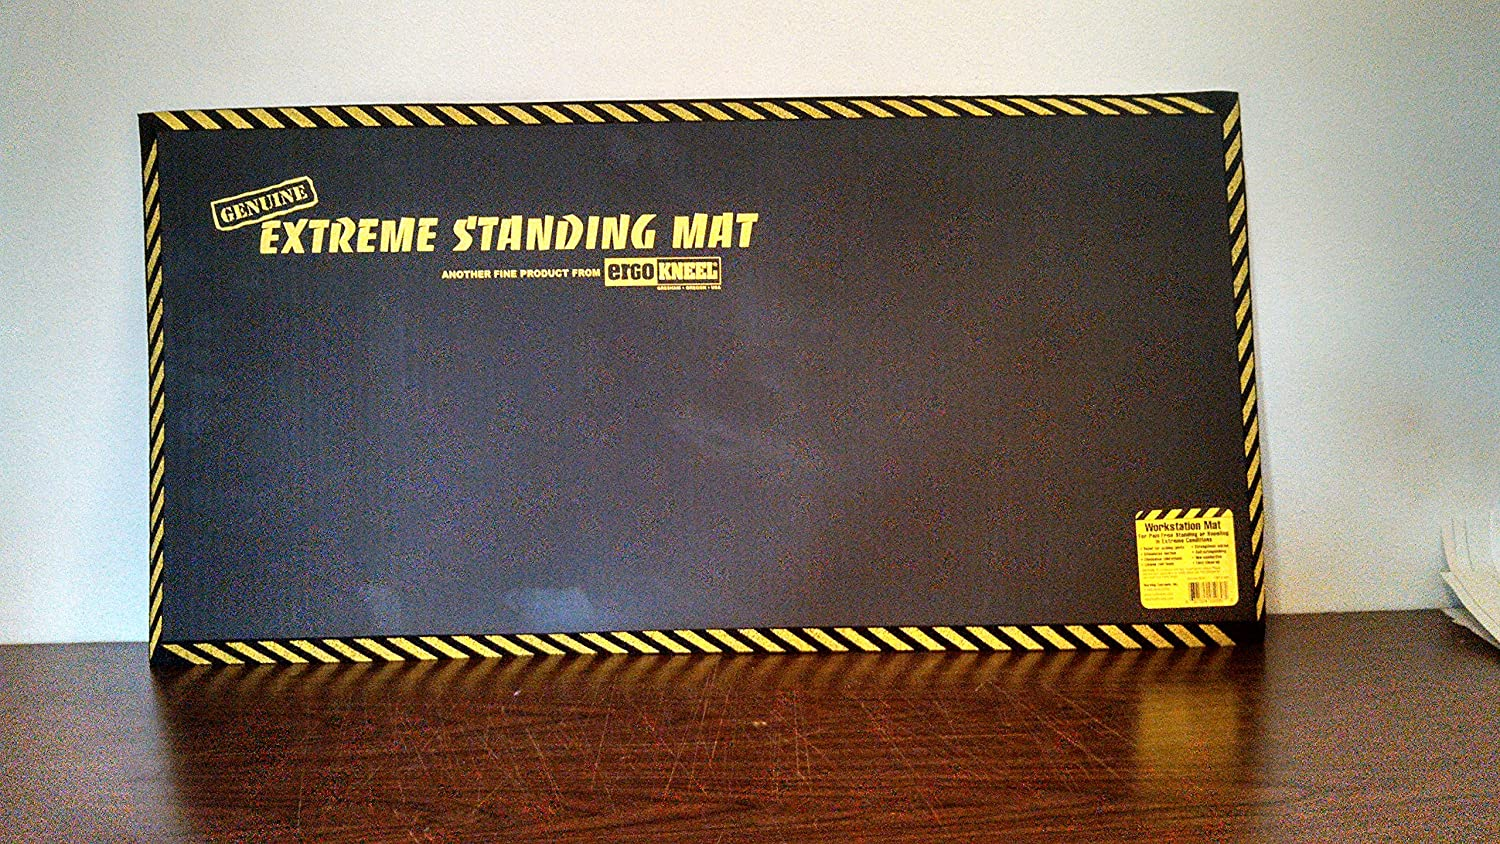 malaysia standing fatigue extreme quotation esd anti mats mat